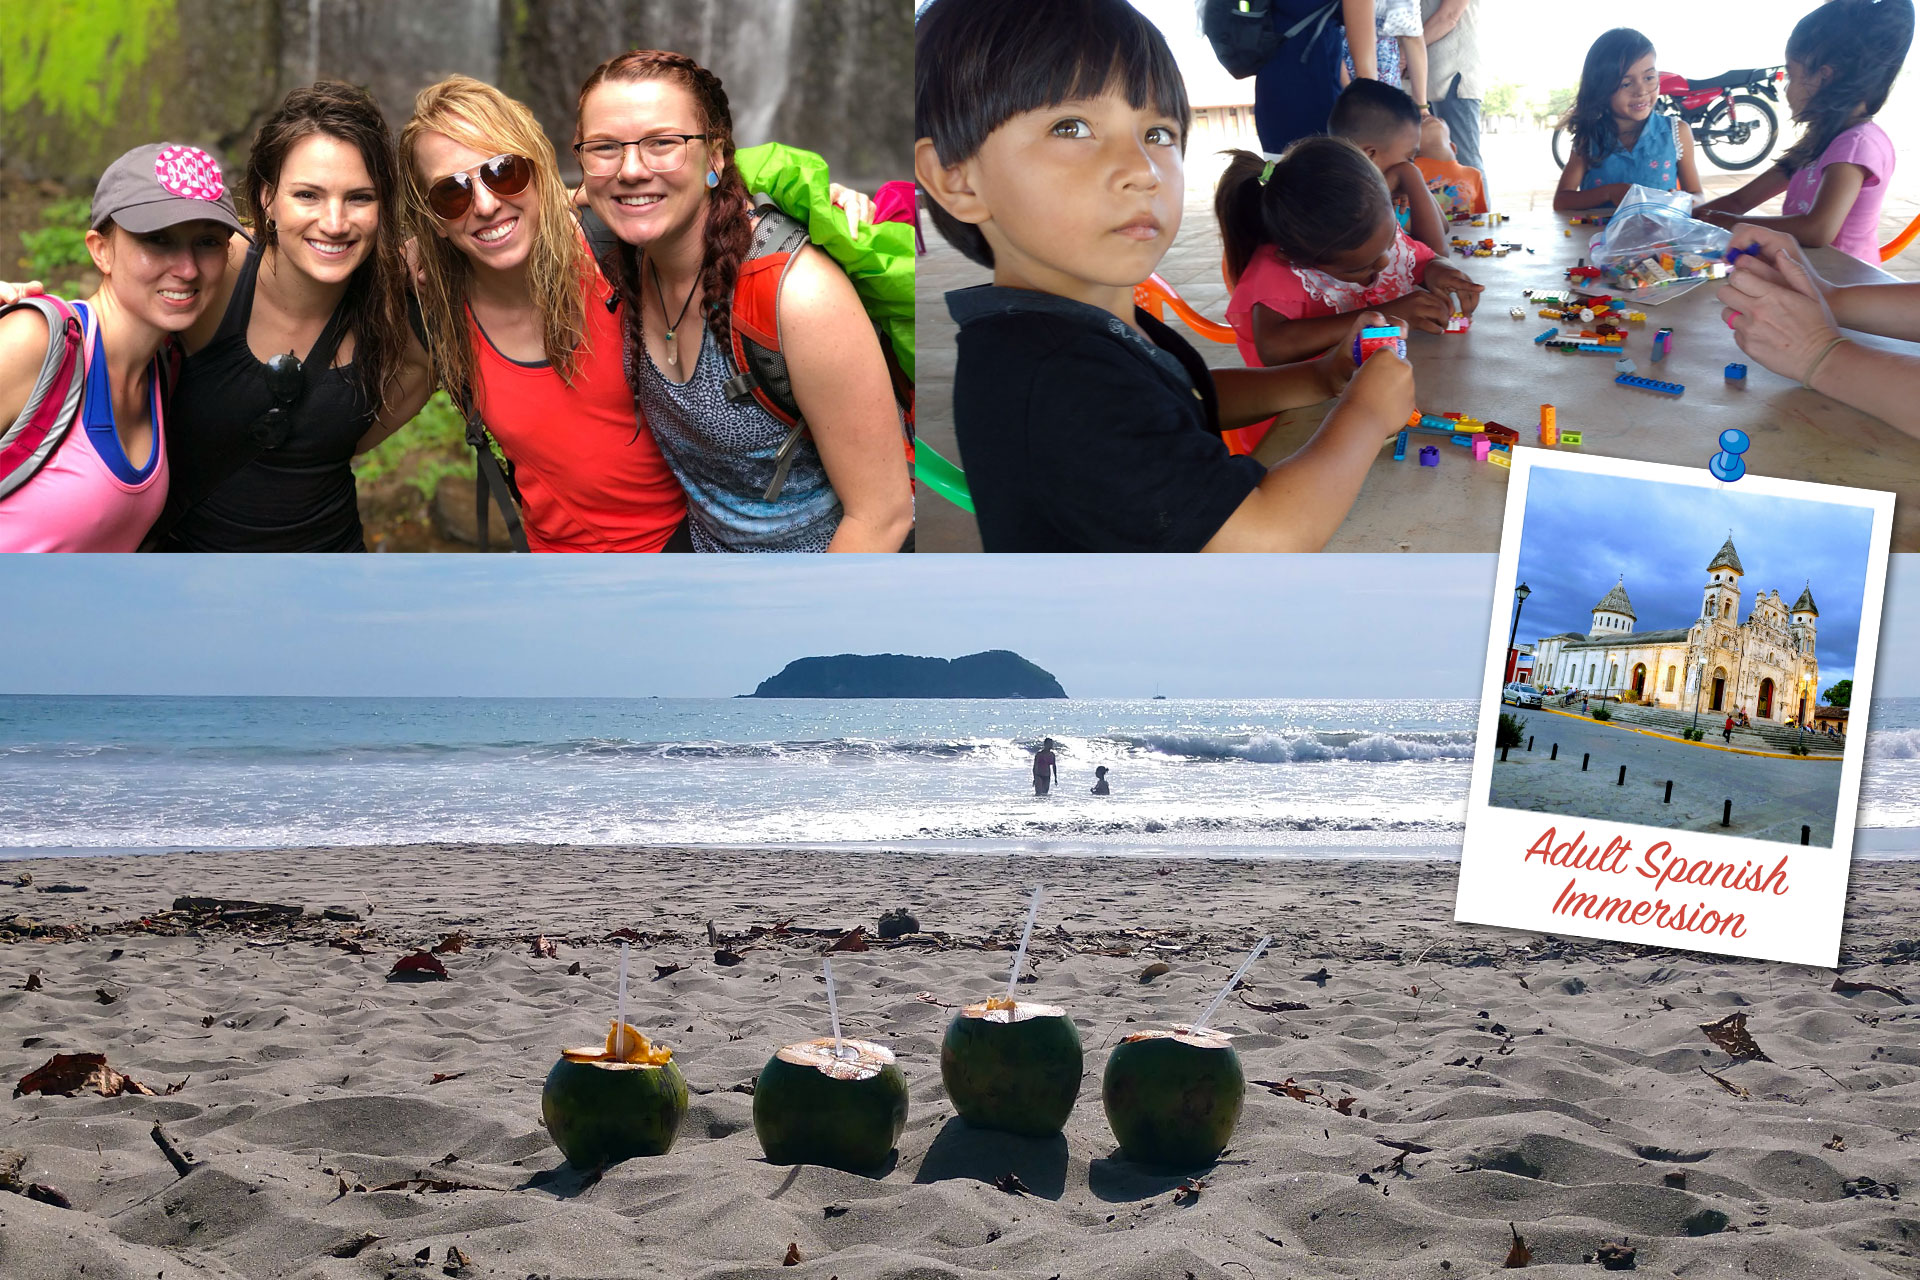 Spanish Immersion for Adults in Costa Rica & Ecuador